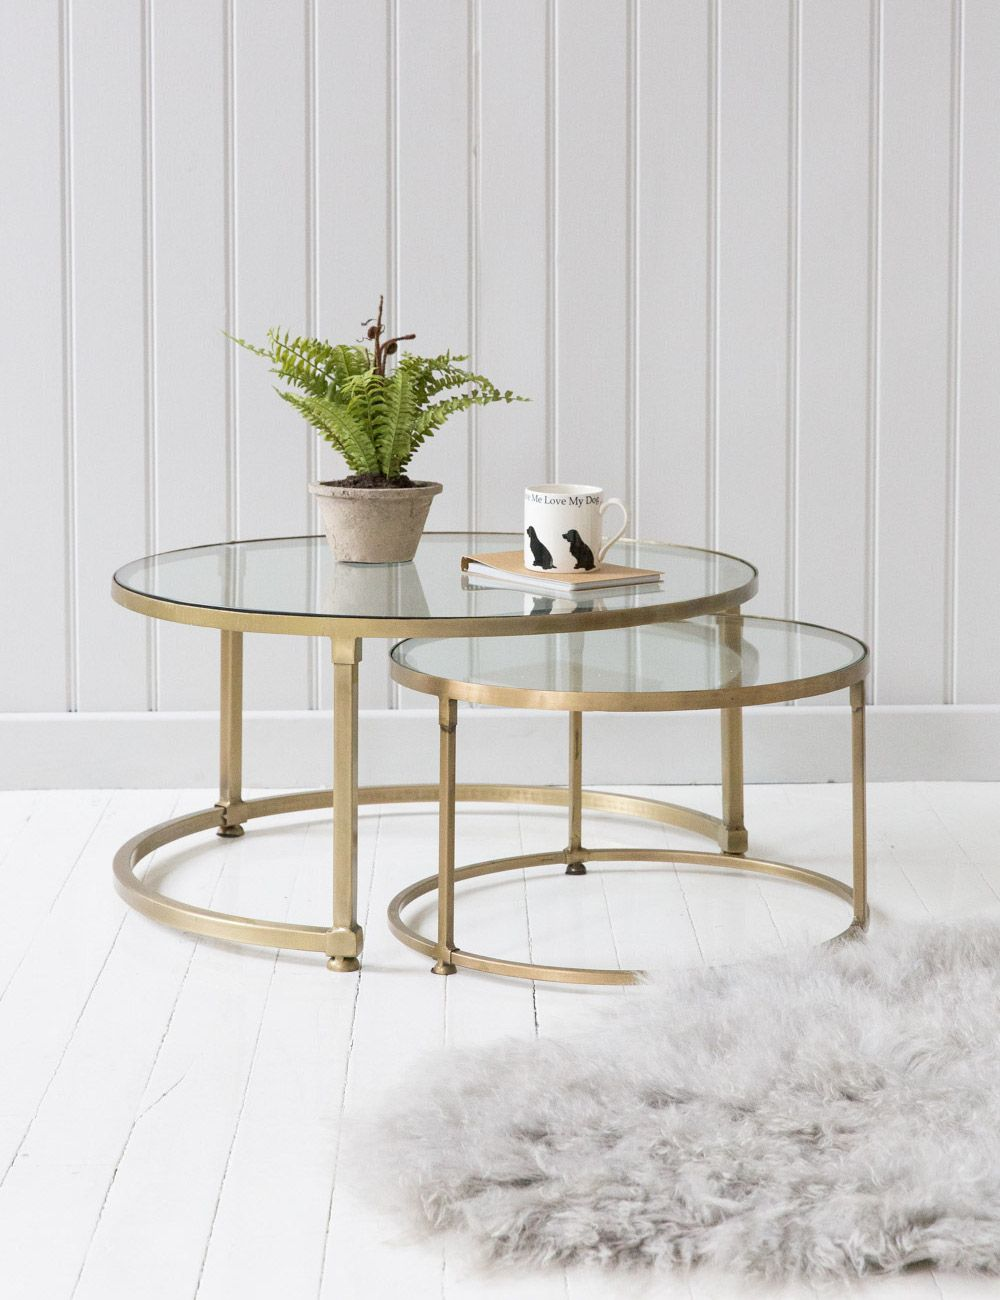 Coco nesting round glass coffee tables round glass coffee table coco nesting round glass coffee tables geotapseo Images